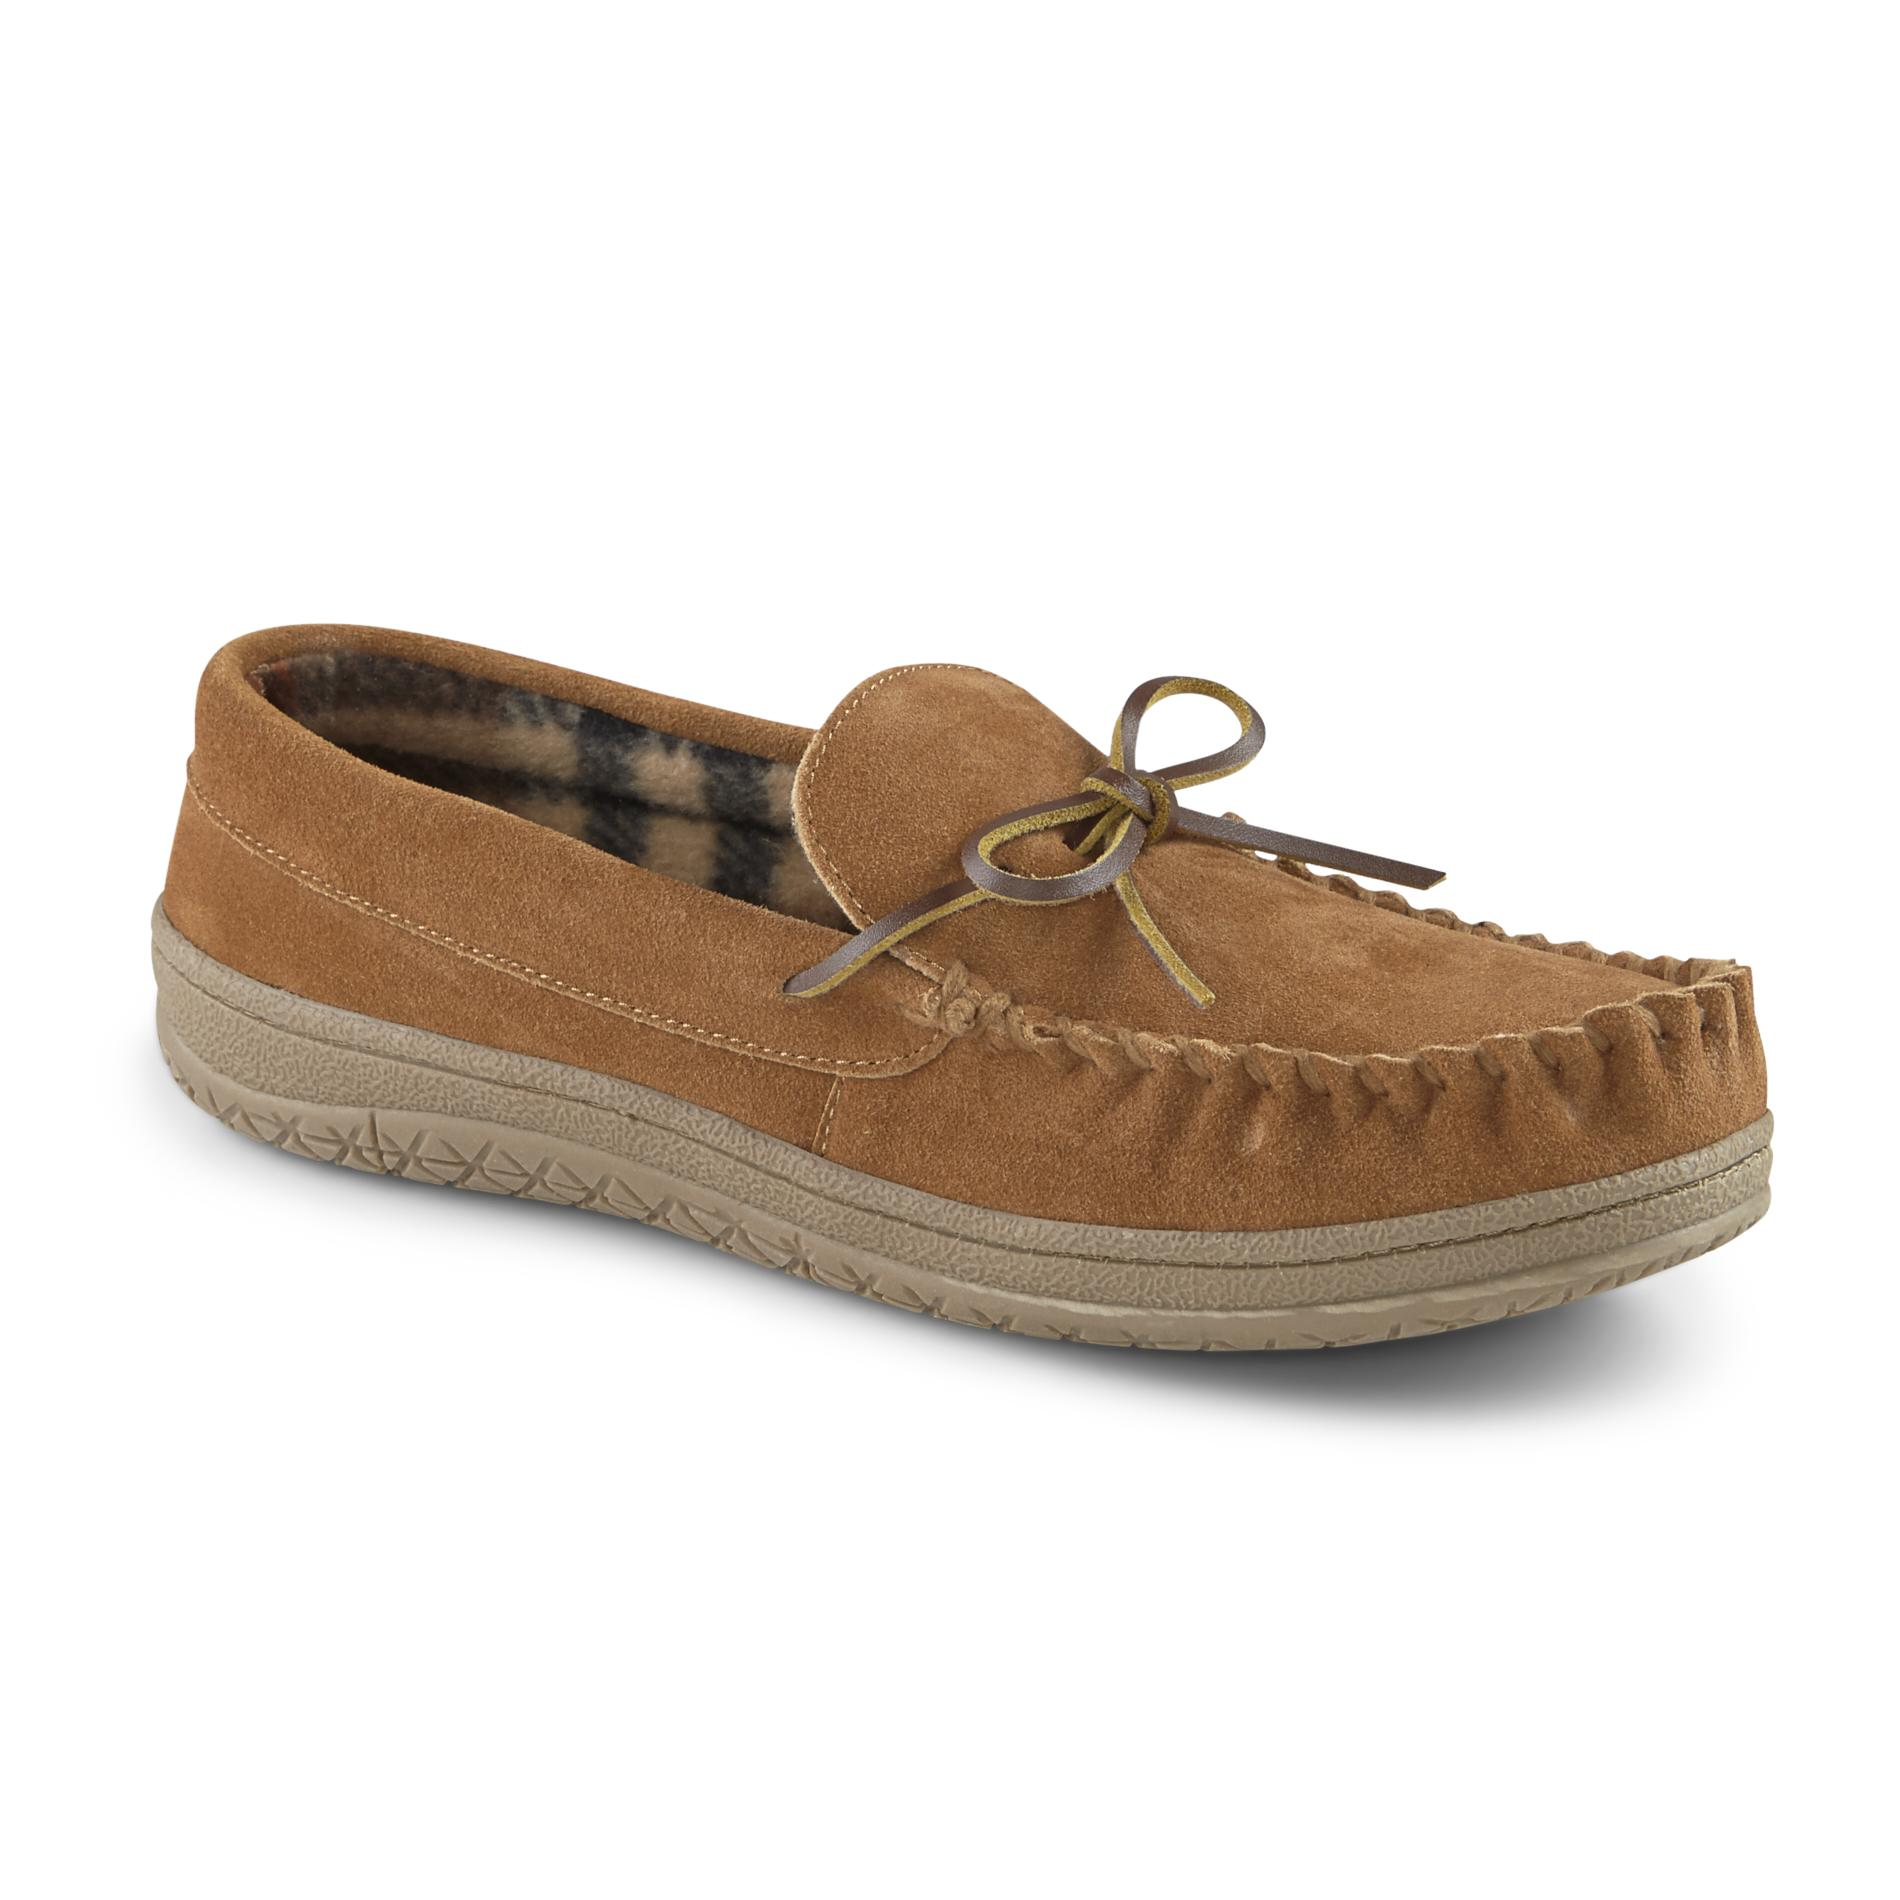 mens moccasin style slippers photo - 1